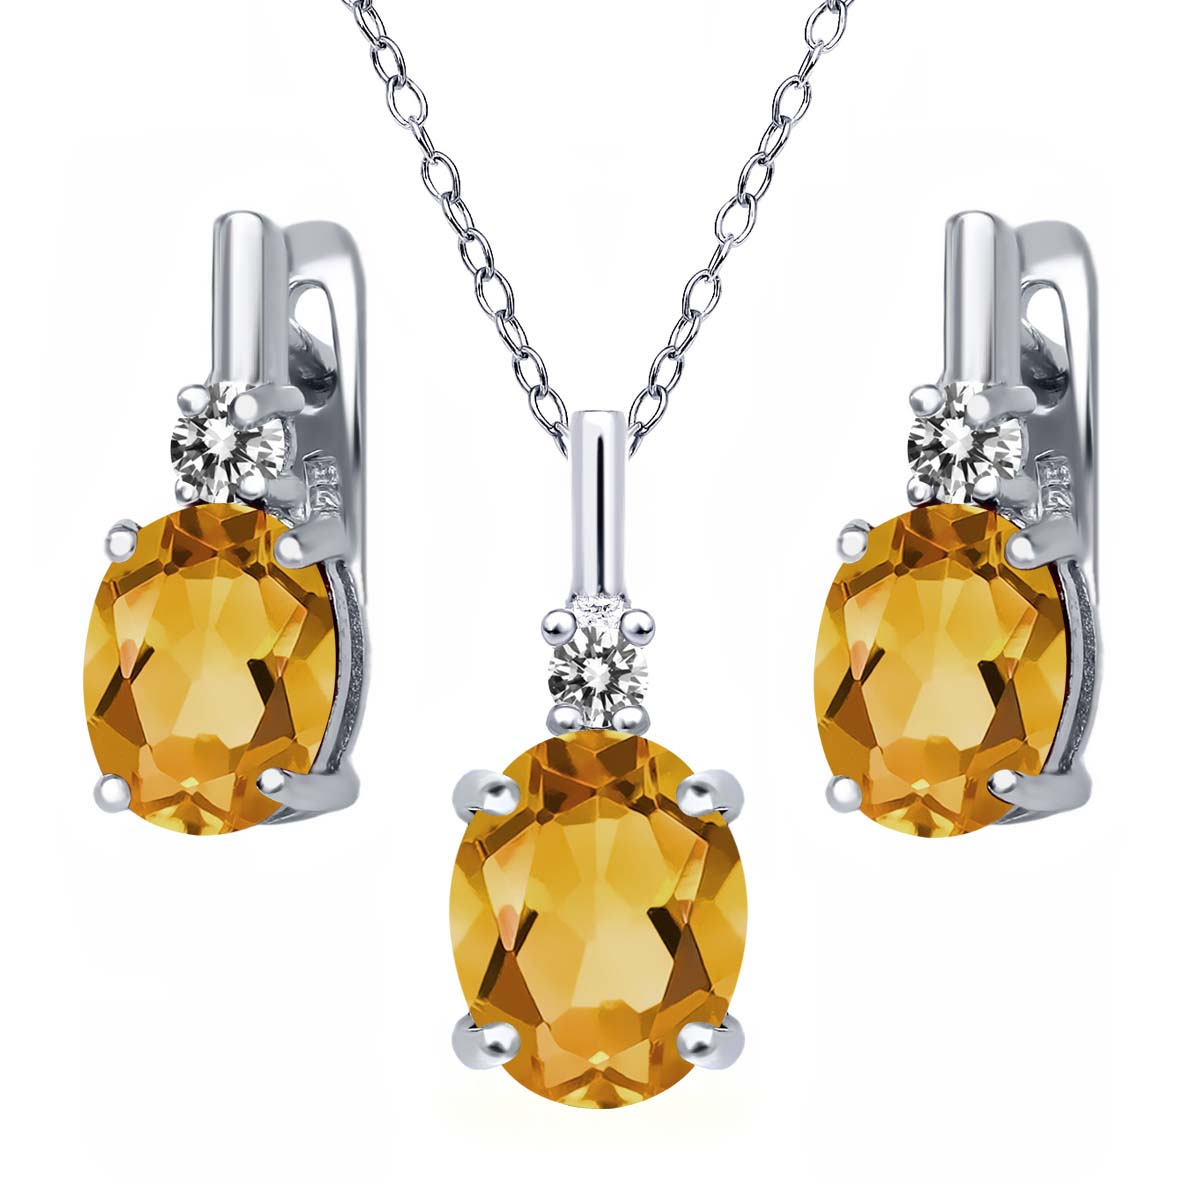 3.52 Ct Oval Yellow Citrine White Diamond 925 Silver Pendant Earrings Set by